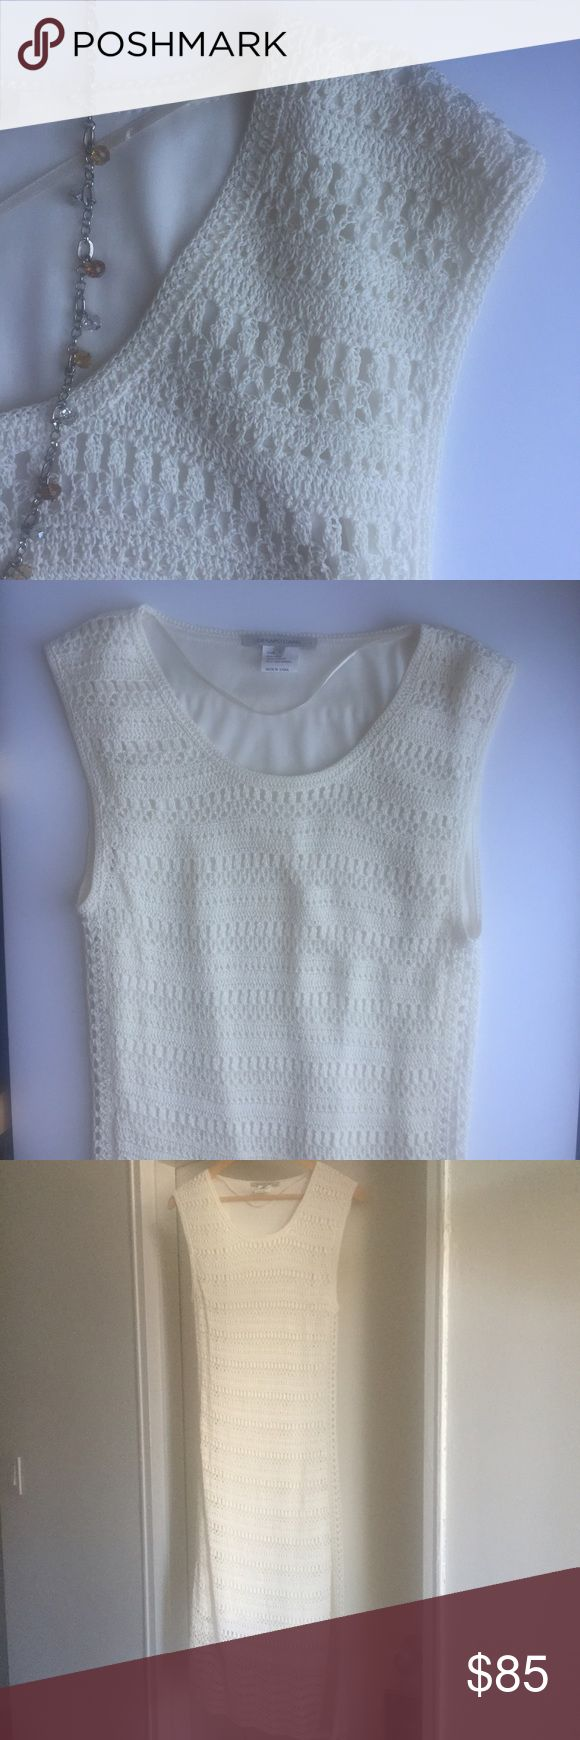 Gerard Darel Cream Crochet Dress Pull on chic minimalist style with this beautiful Gerard Darel Cream Crochet Dress. Style it easily for a day party of for a relaxing weekend away!  100% polyester lining and 100% viscose shell. So gorgeous!! Gerard Darel Dresses Midi